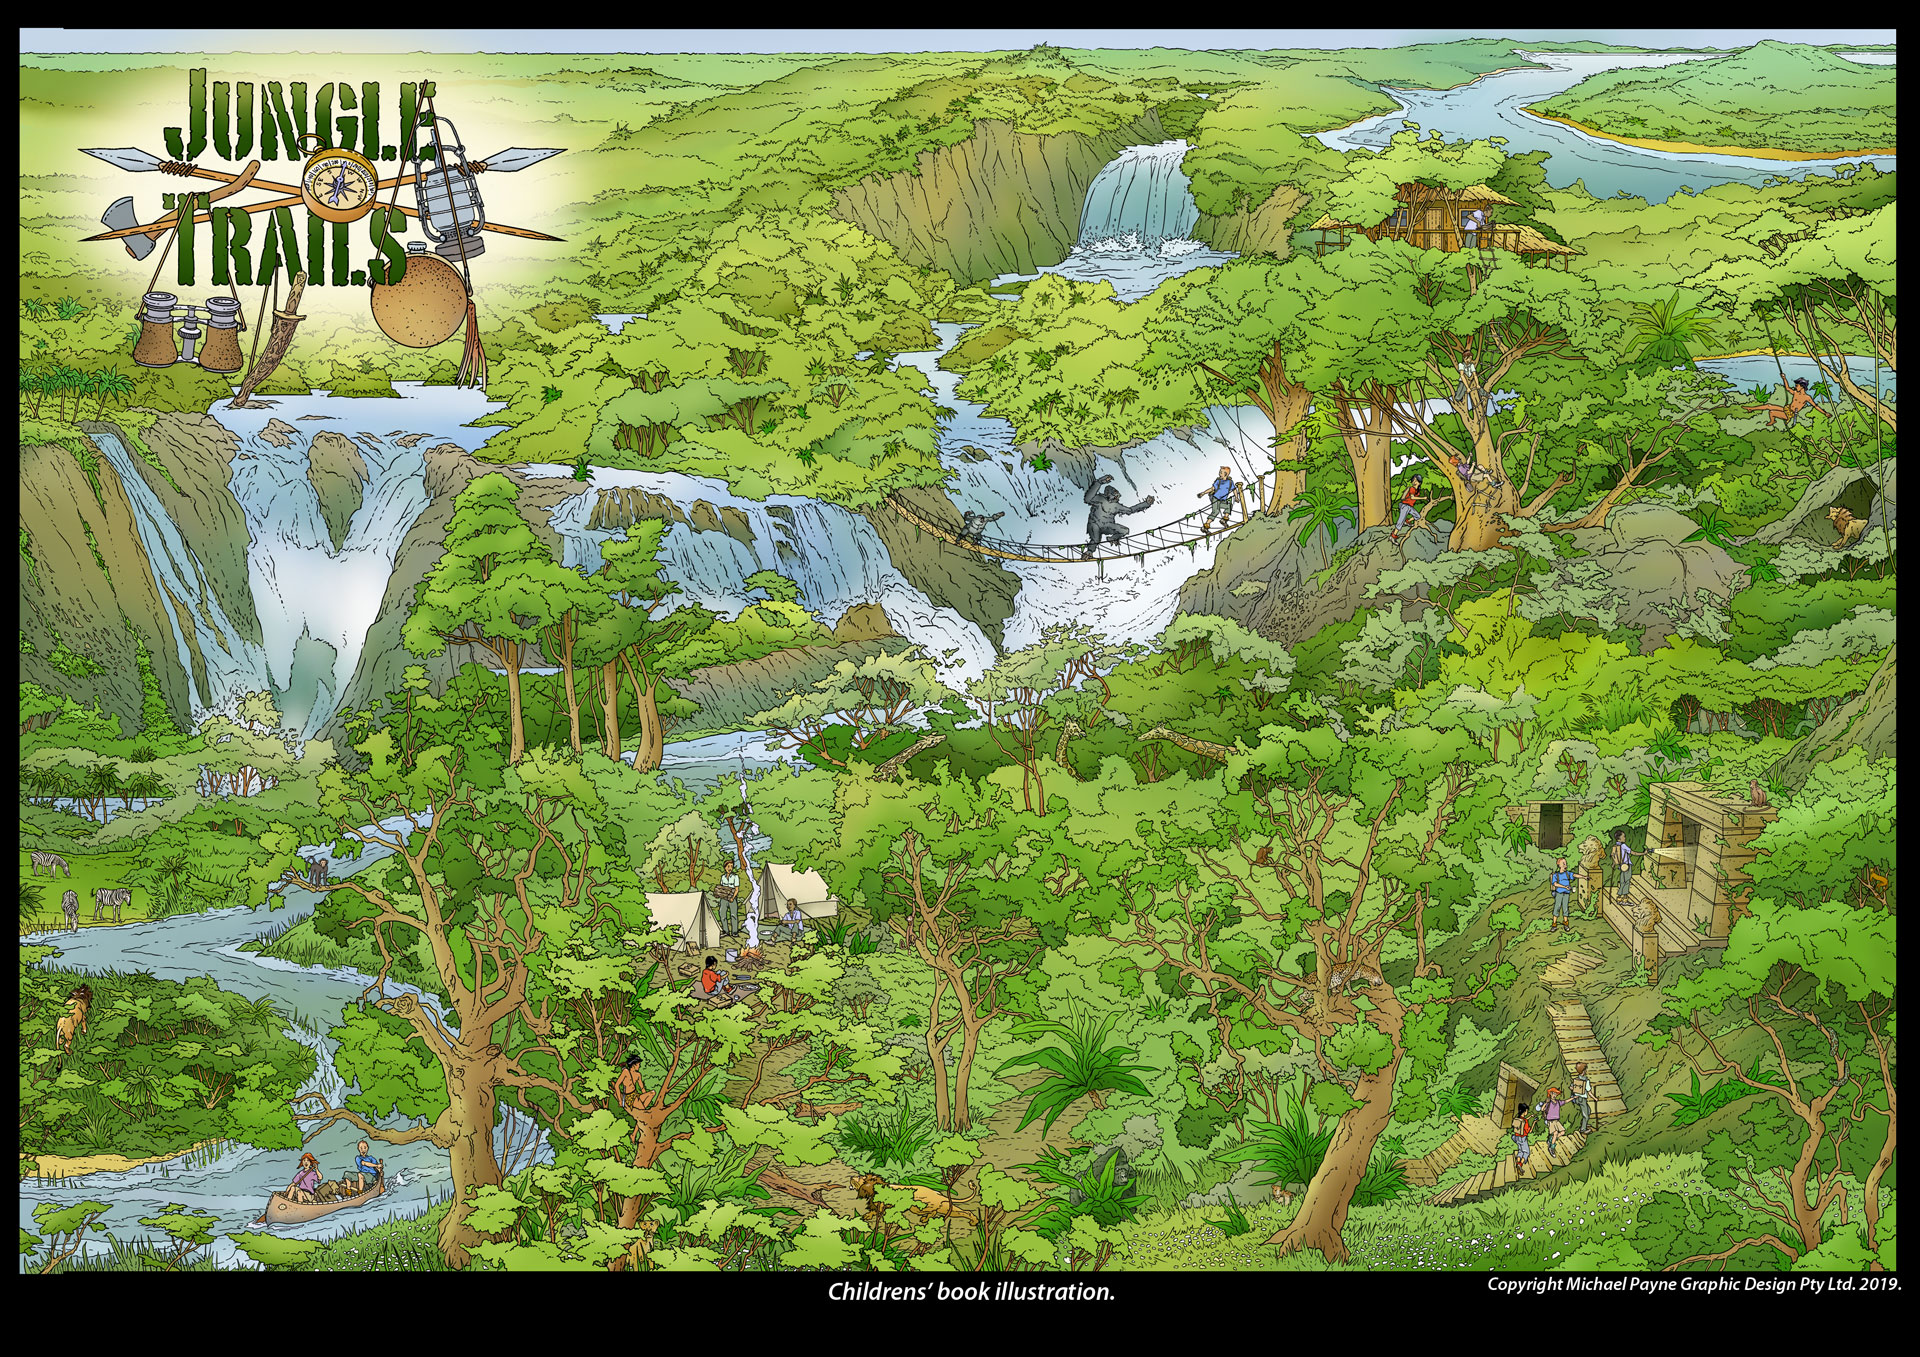 Jungle Trails Childrens Book © Michael Payne Graphic Design